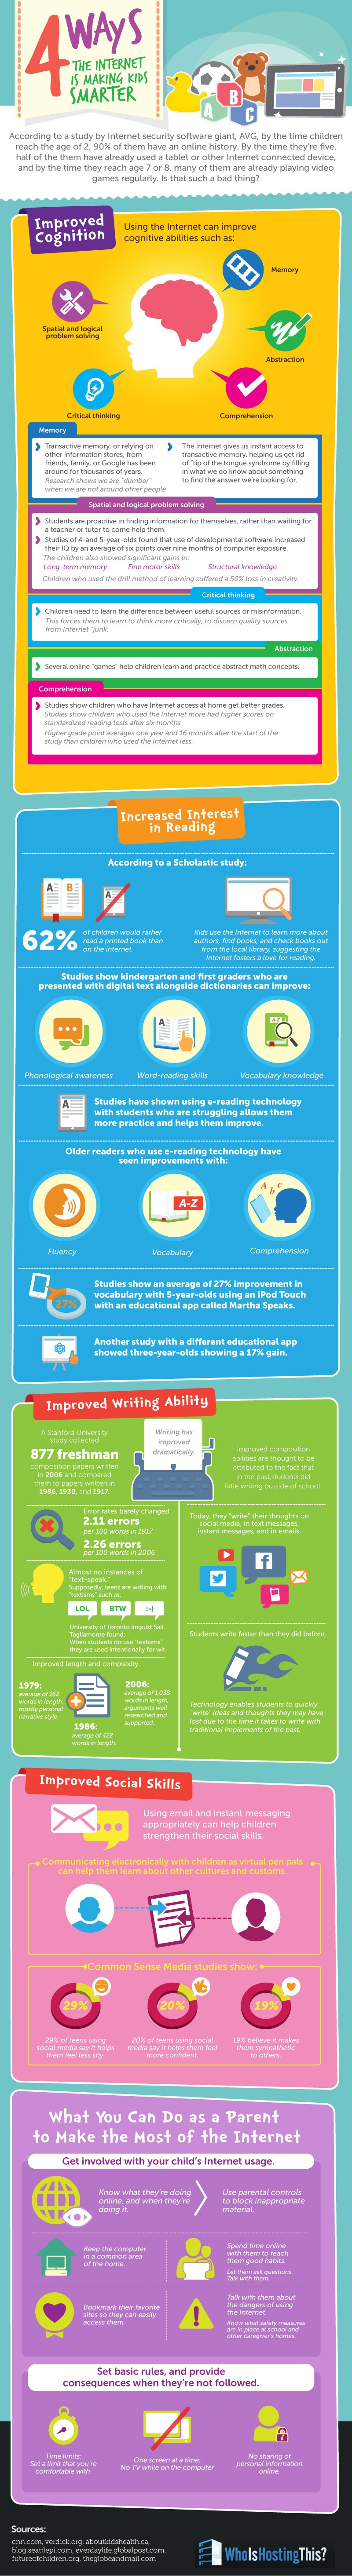 4-Ways-The-Internet-Is-Making-Kids-Smarter-Infographic